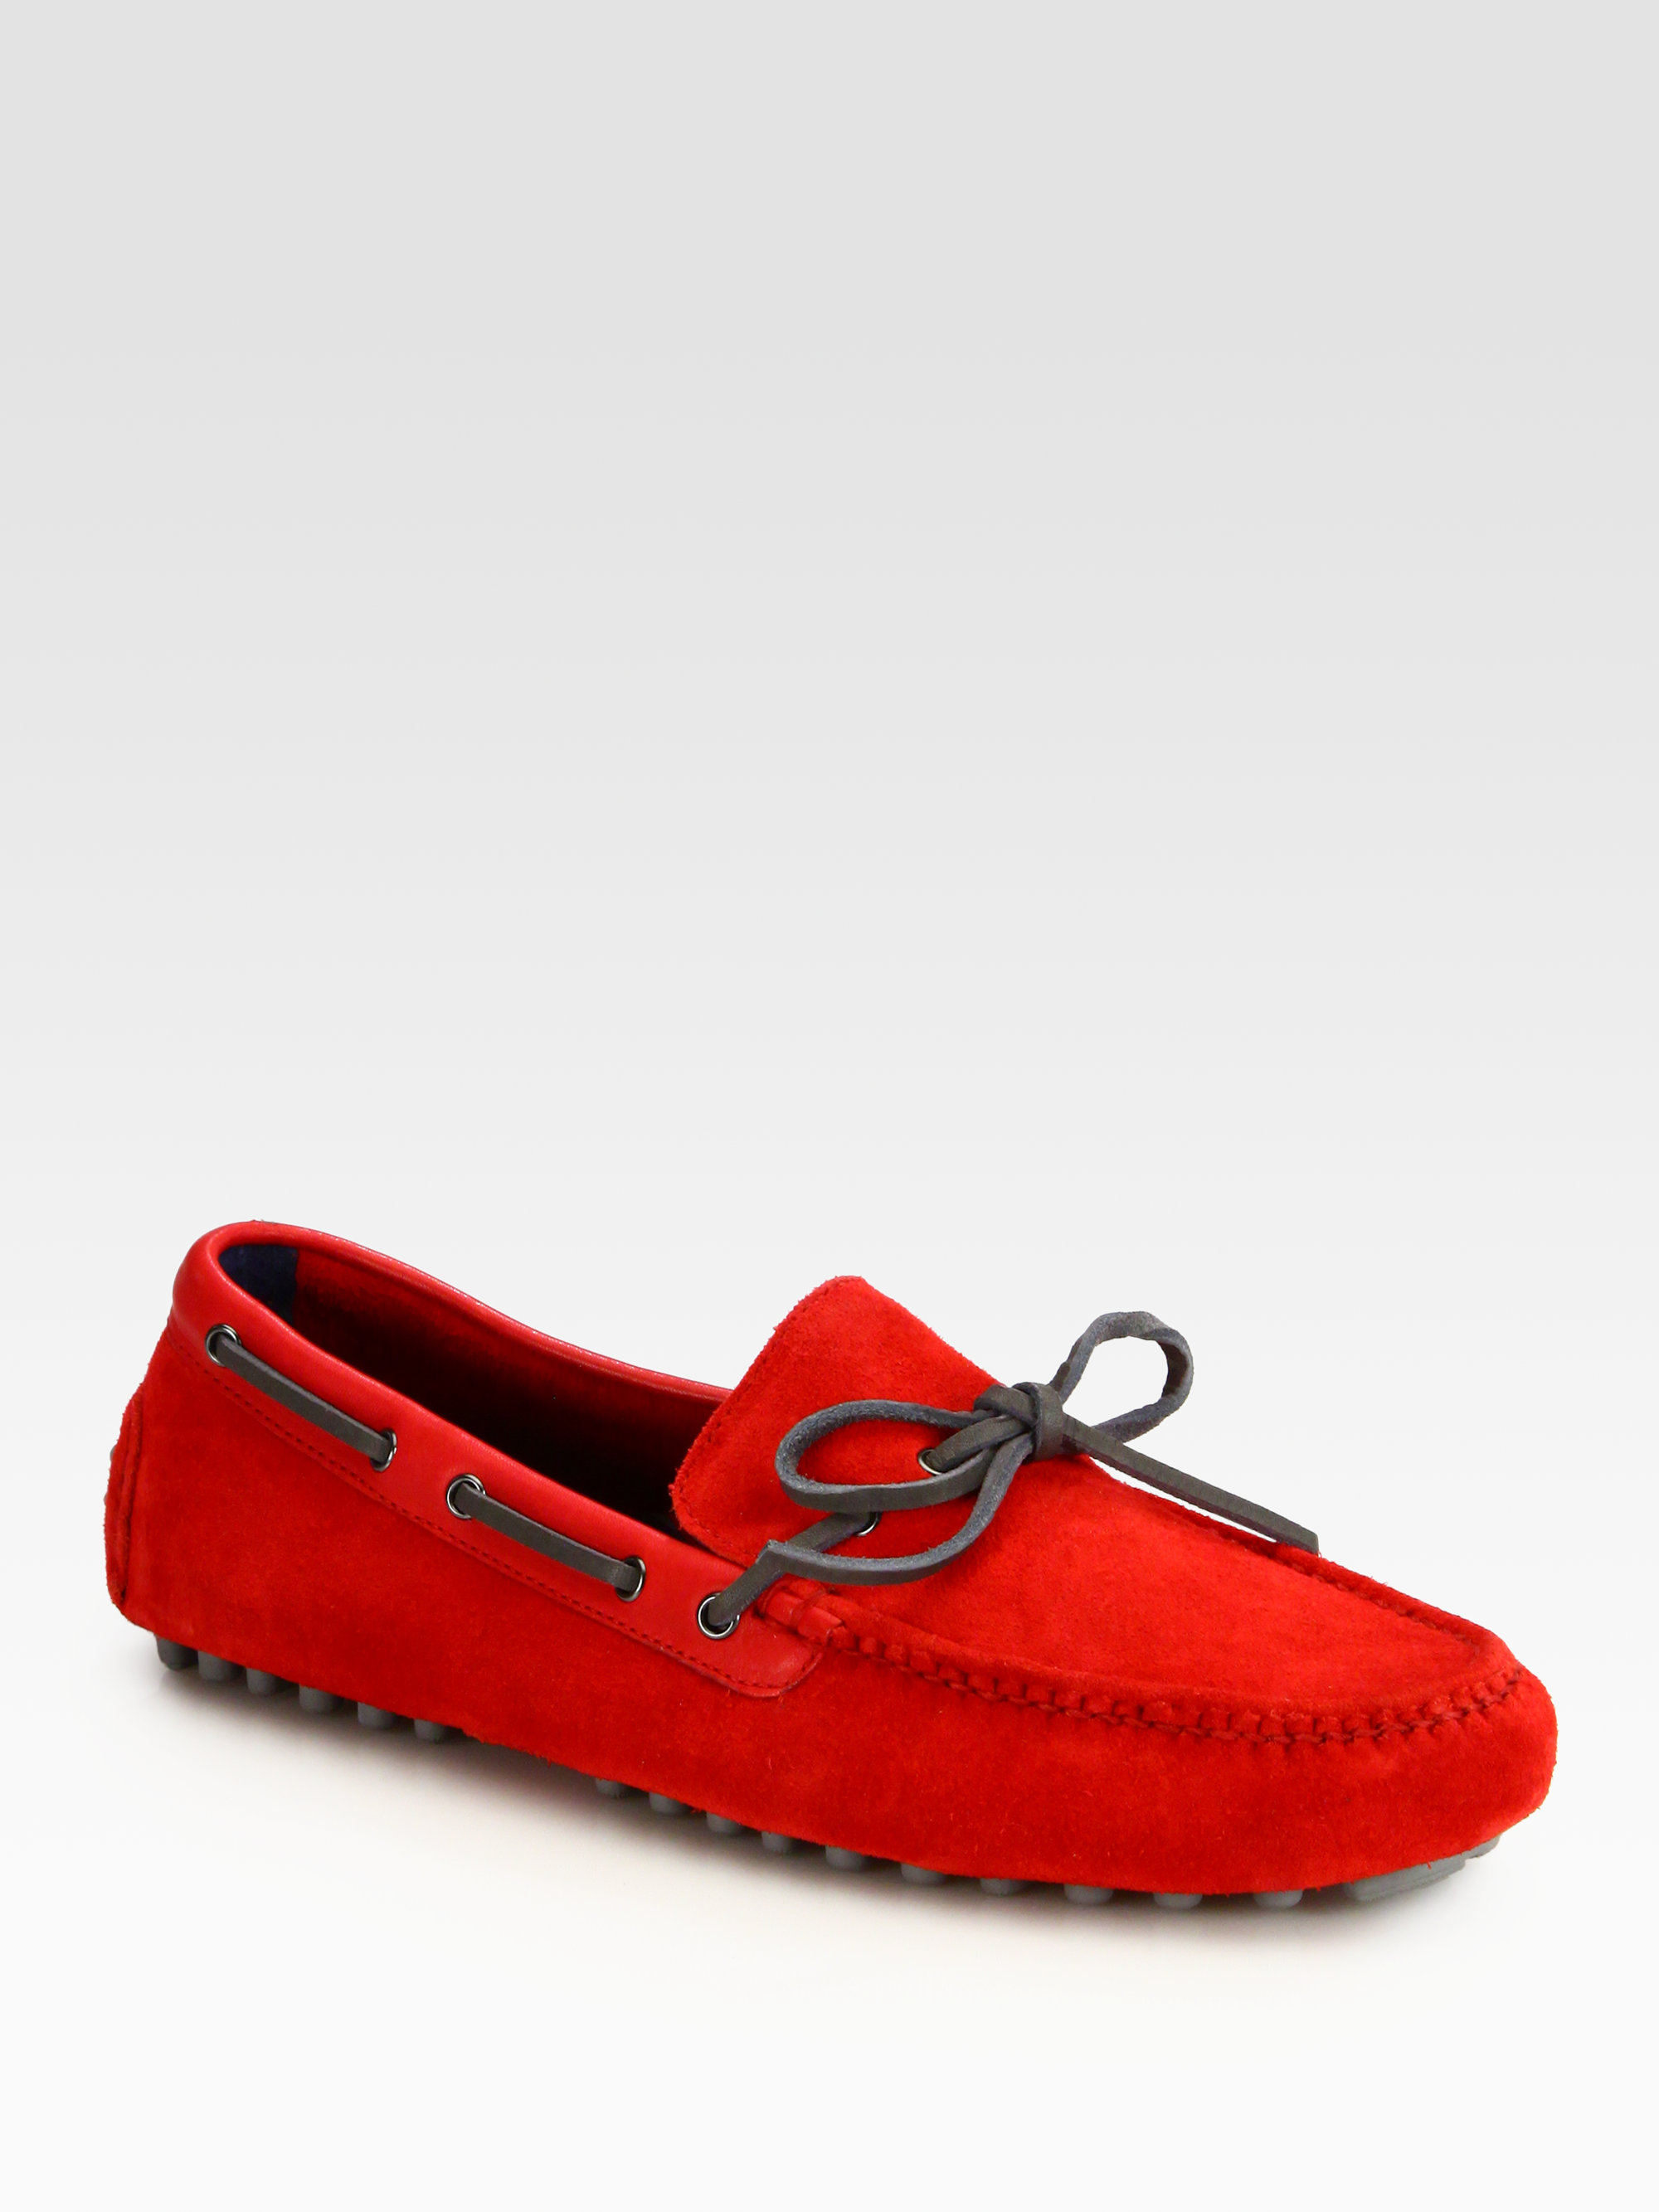 144b7b5ef36 Lyst - Cole Haan Air Grant Driving Moccasins in Red for Men